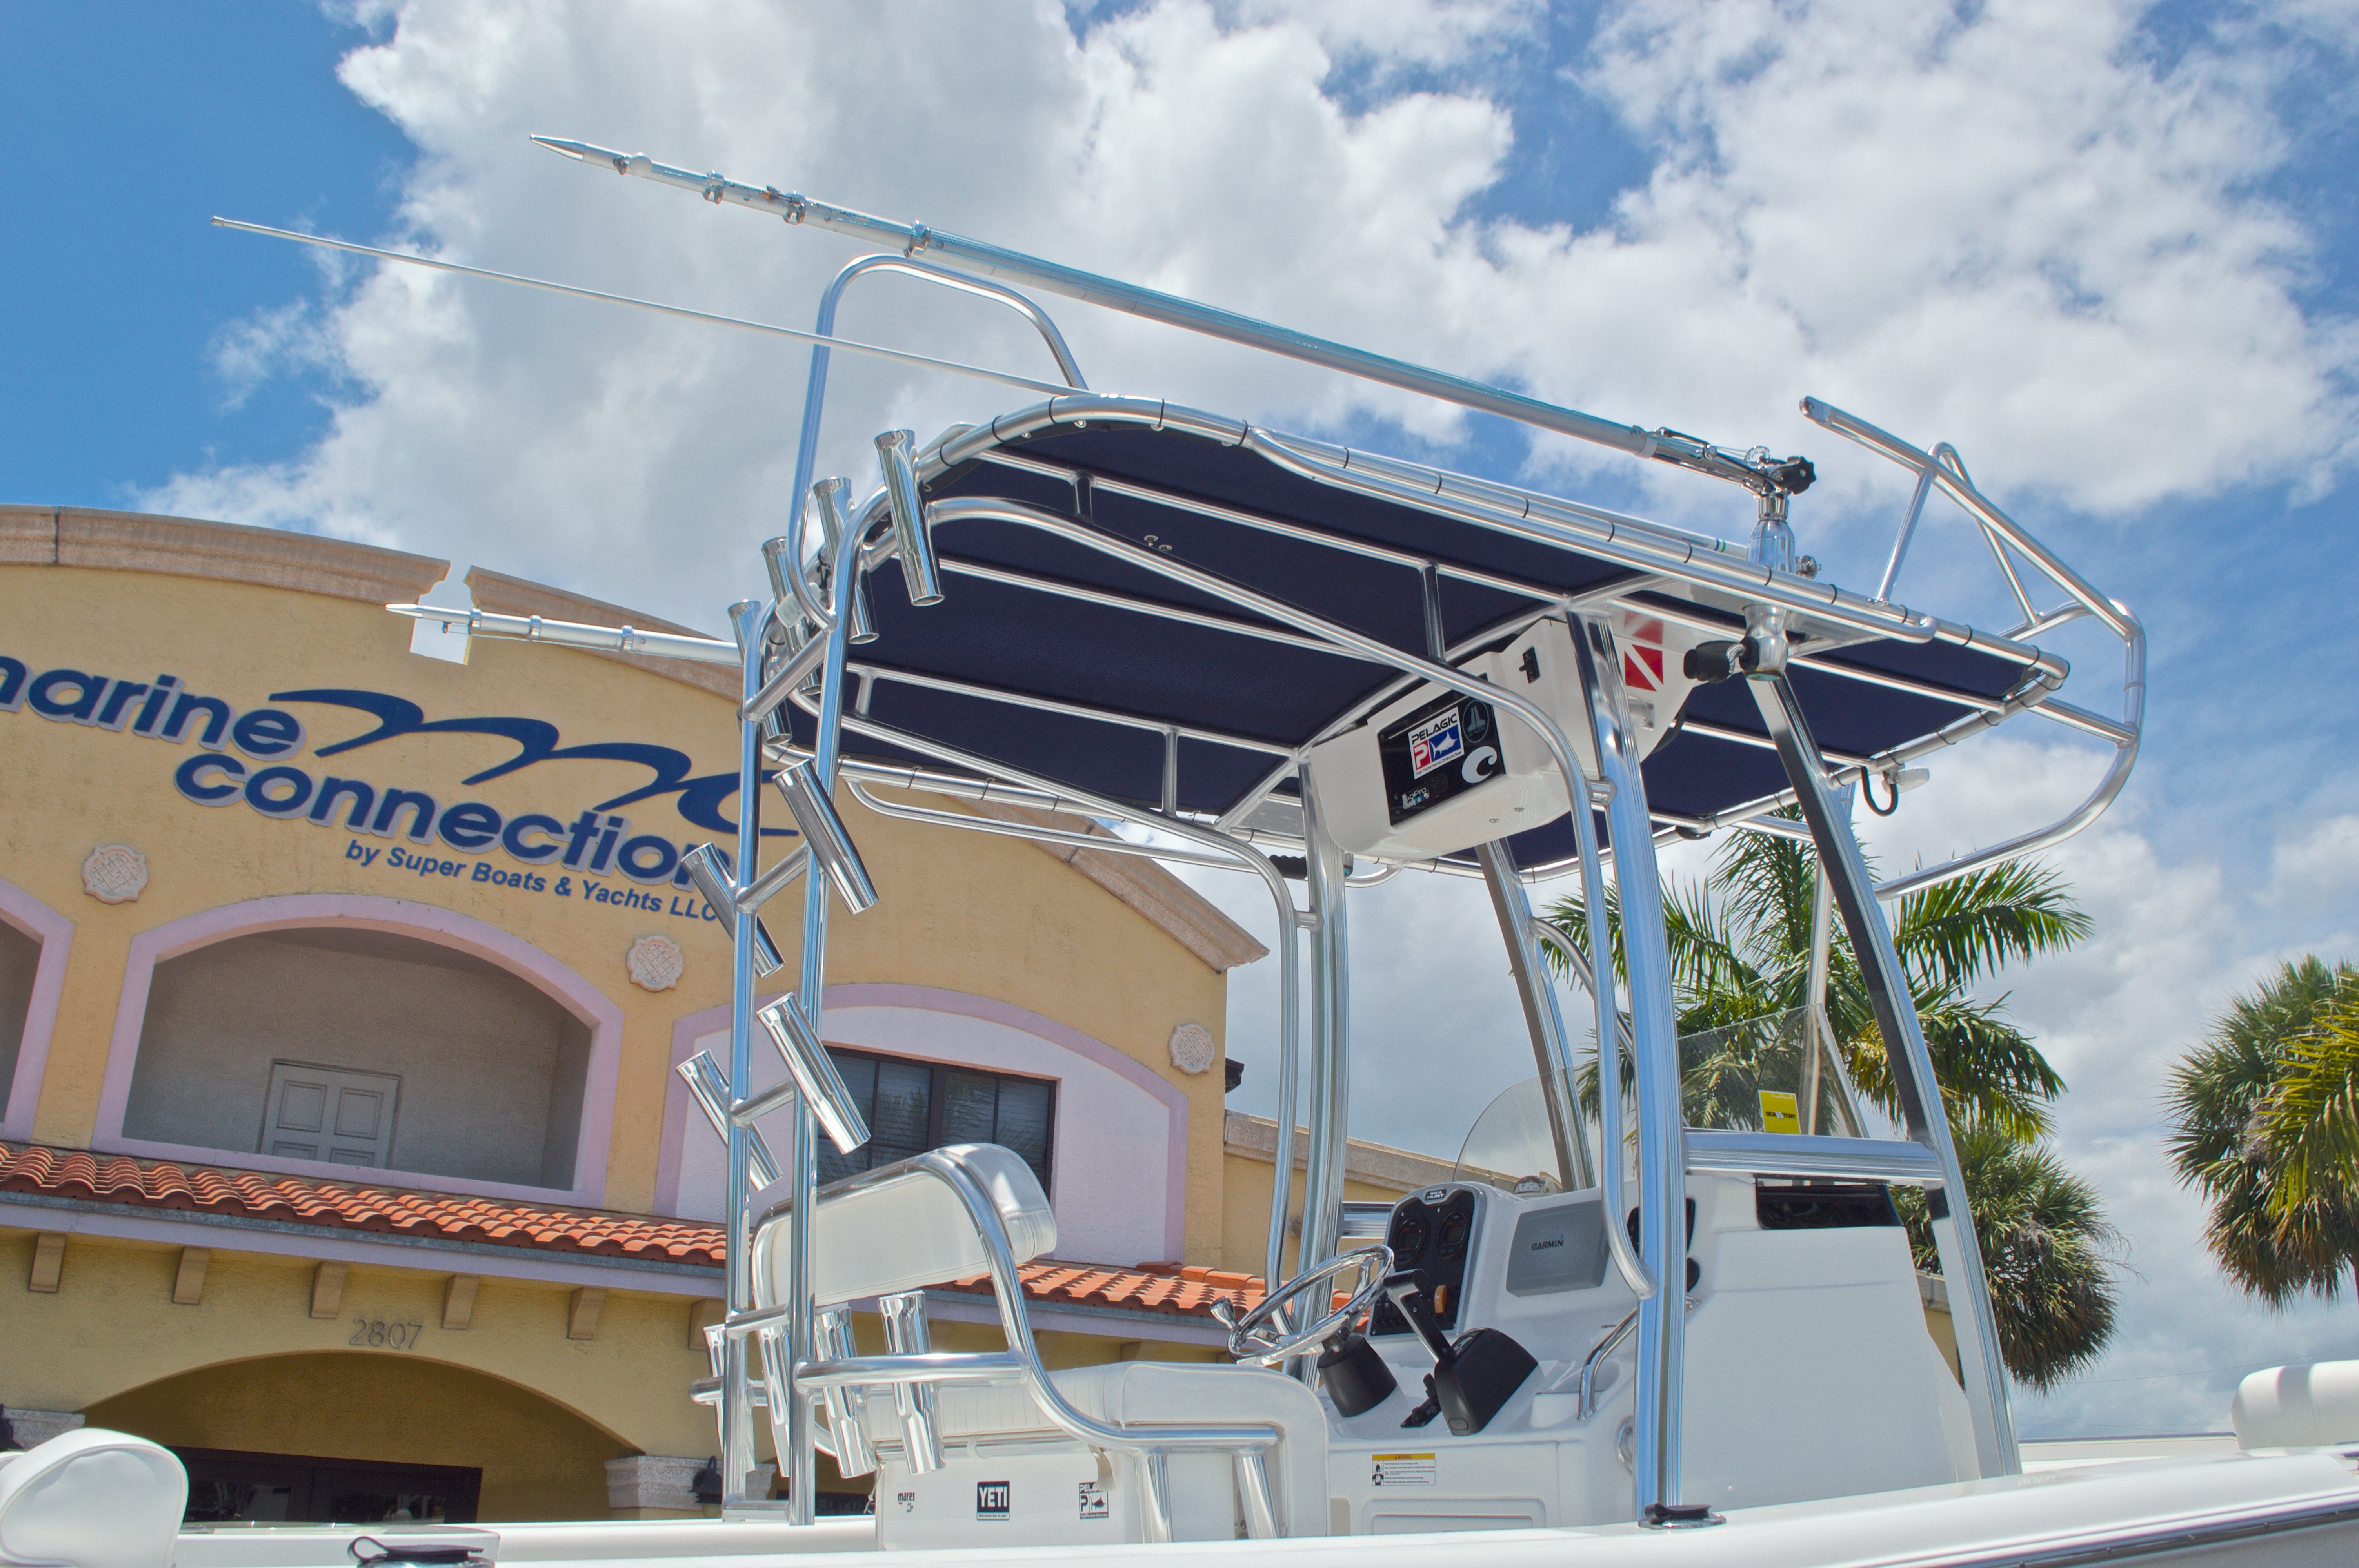 Thumbnail 9 for Used 2013 Sea Hunt 210 Triton boat for sale in West Palm Beach, FL